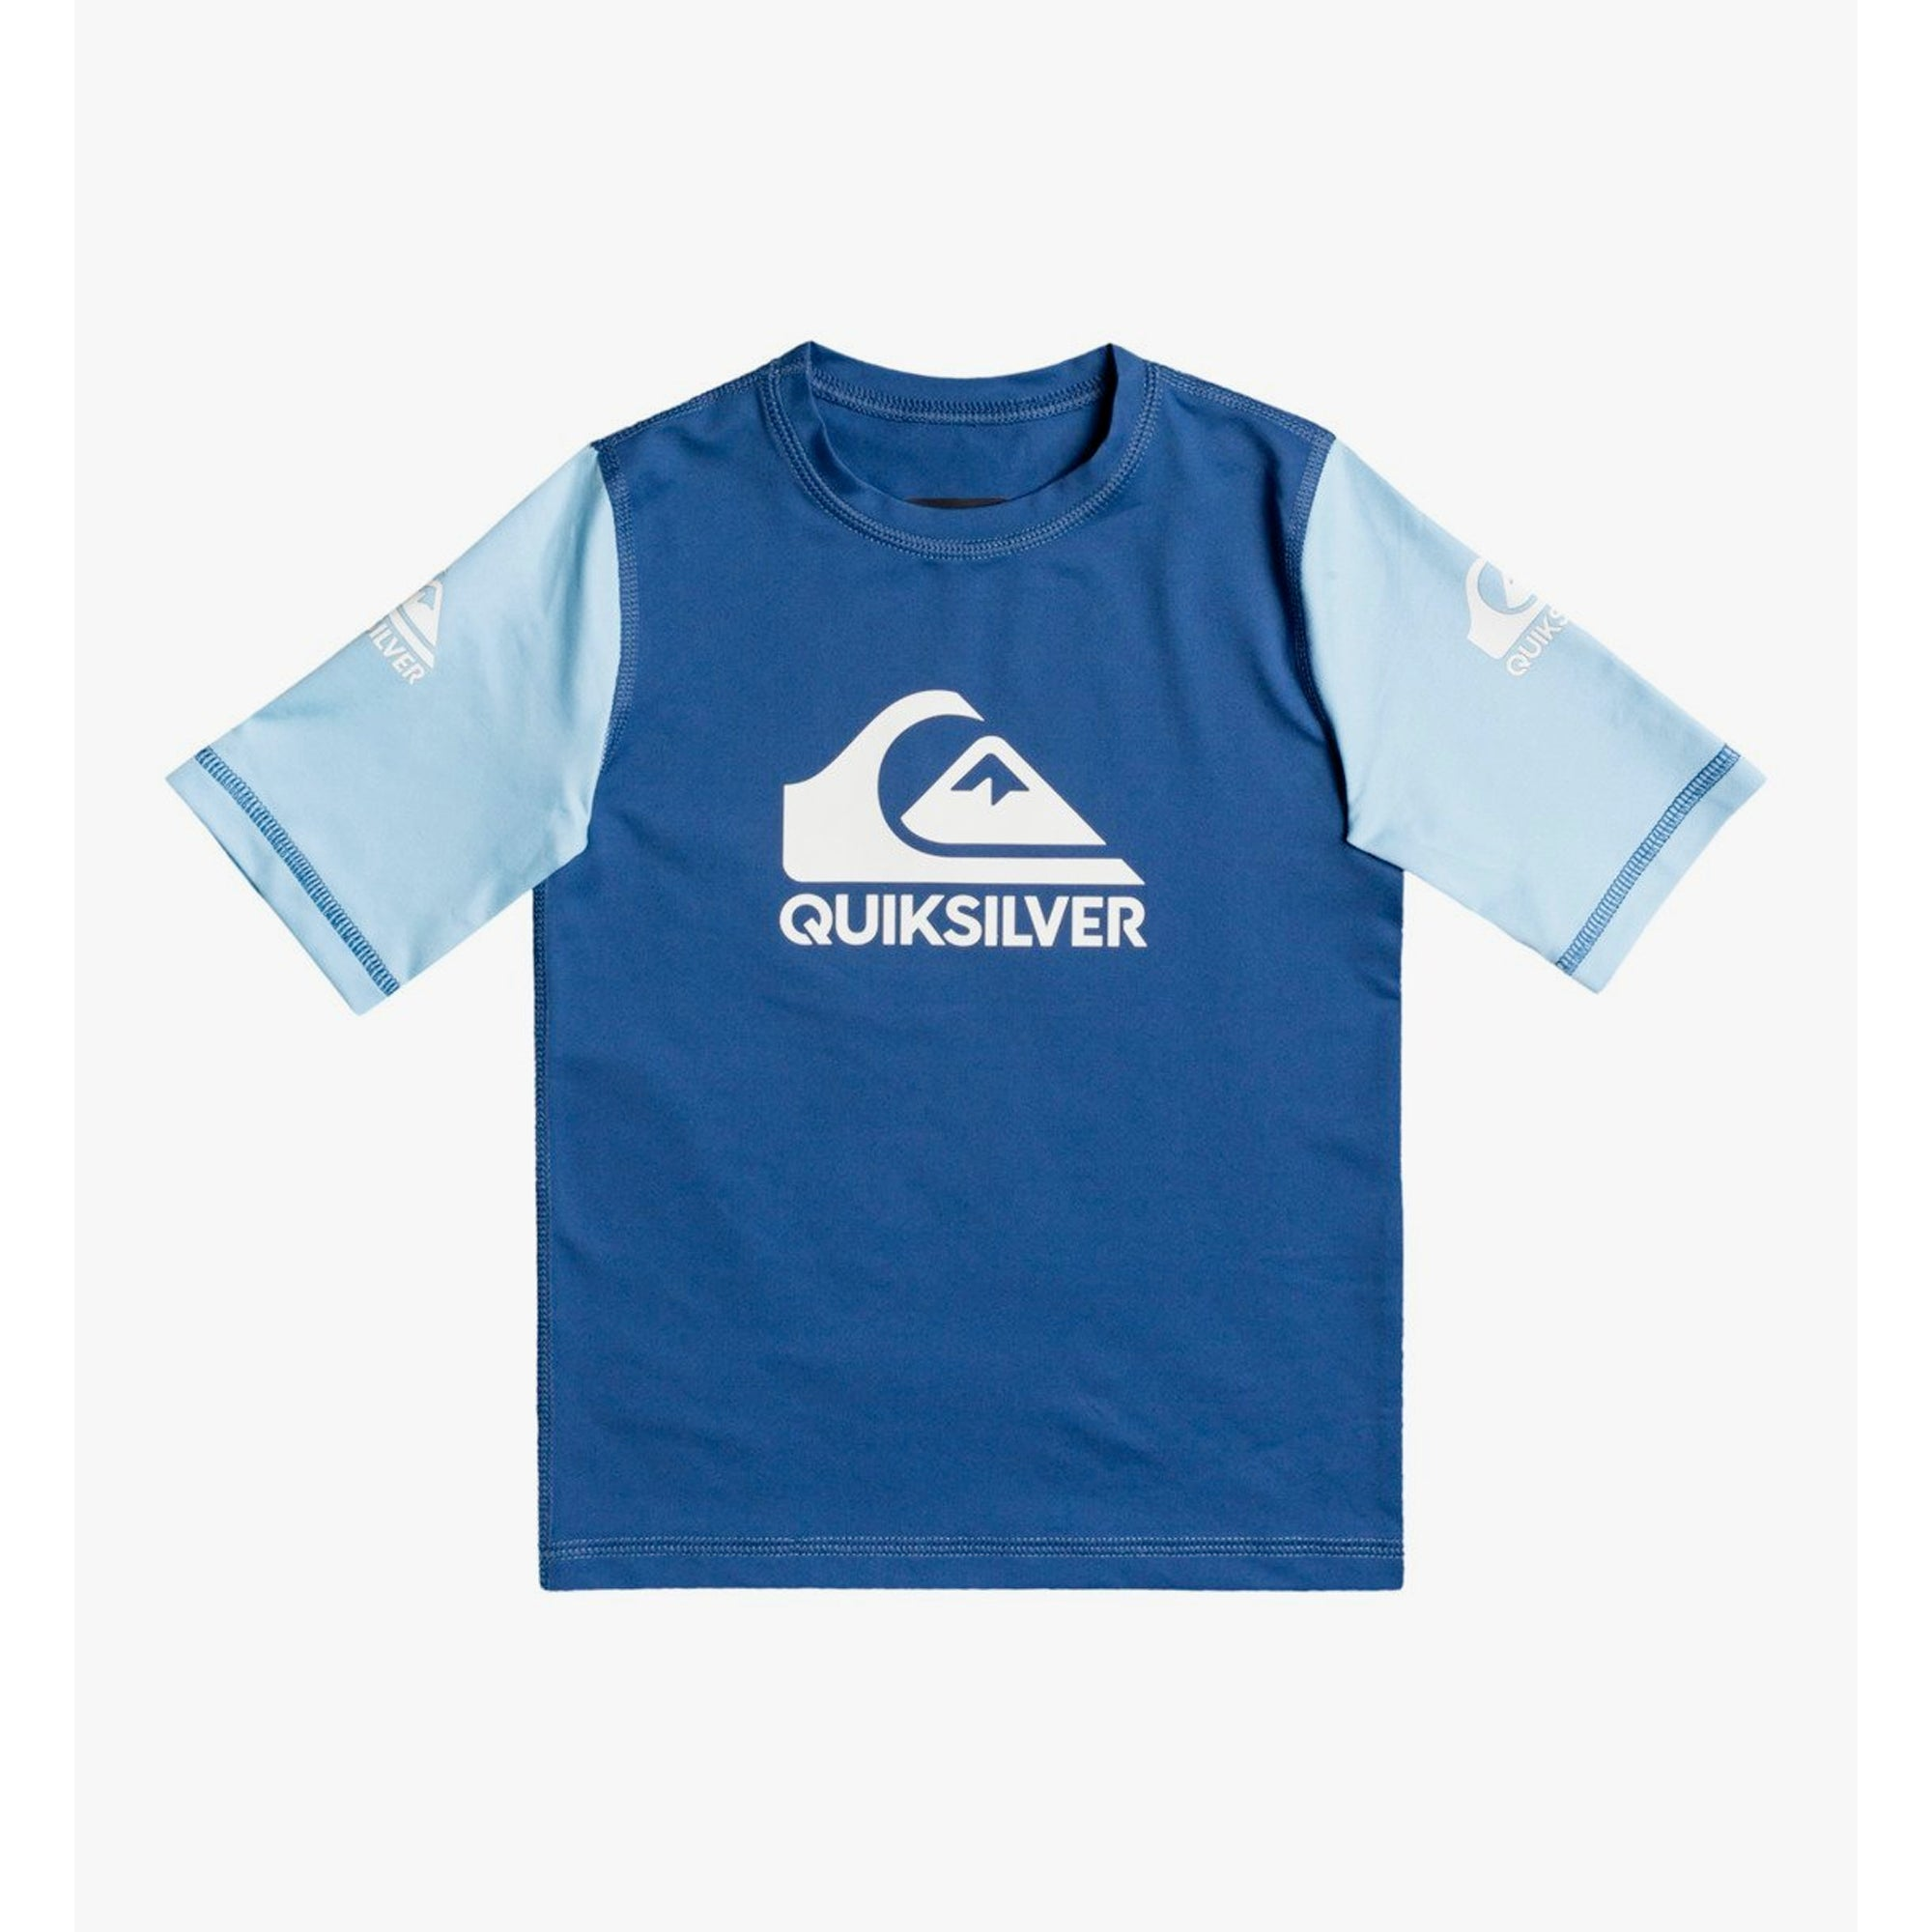 Quiksilver Heats On Youth Boy's S/S Rashguard